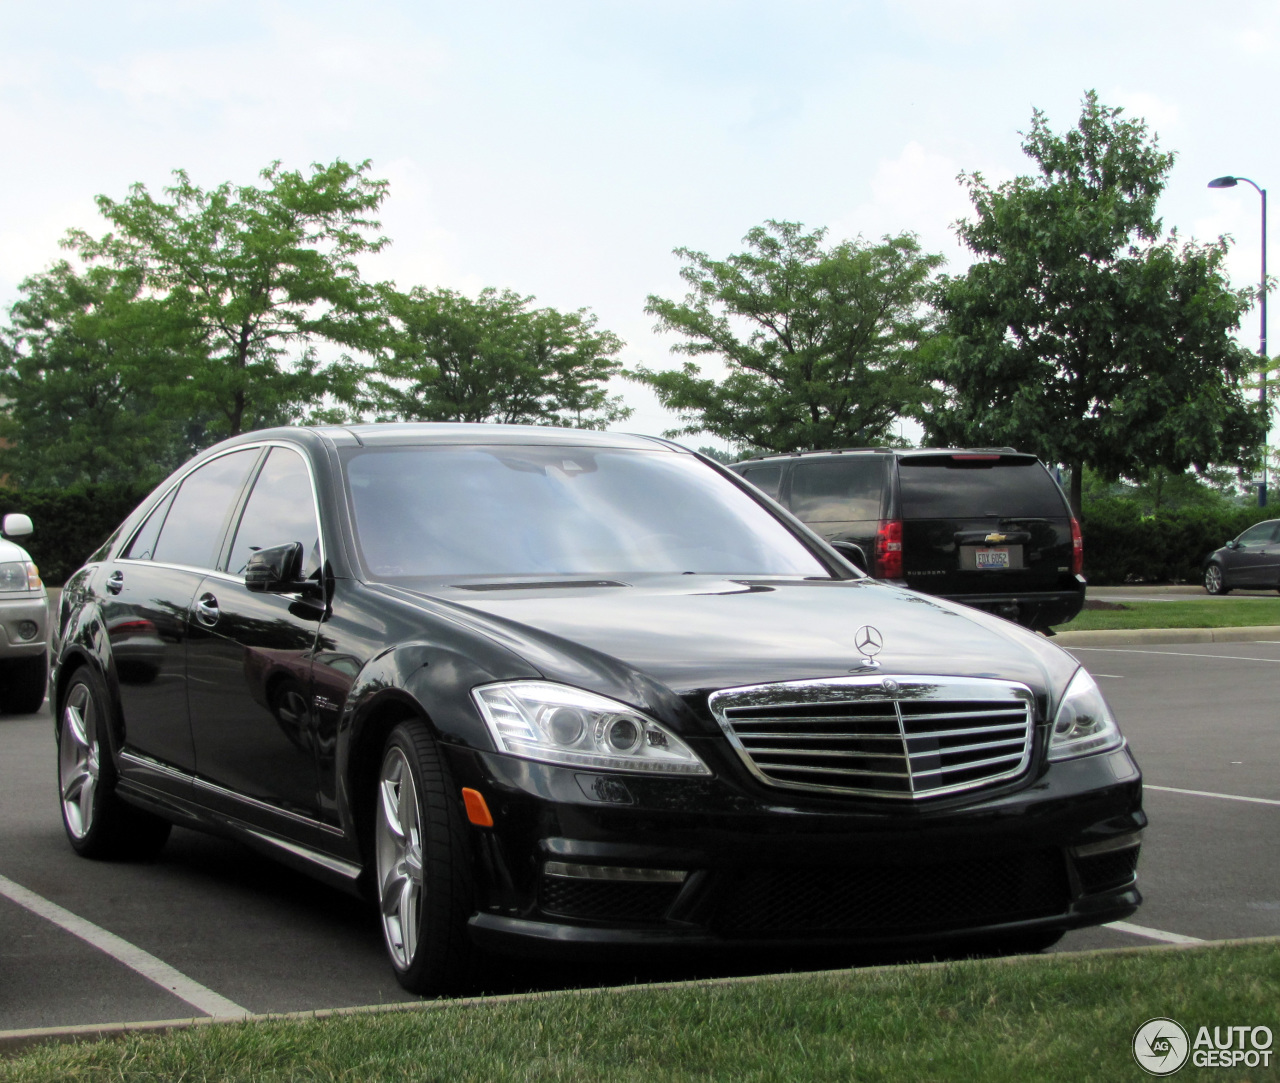 Mercedes benz s 63 amg w221 2010 26 july 2013 autogespot for Mercedes benz w221 price